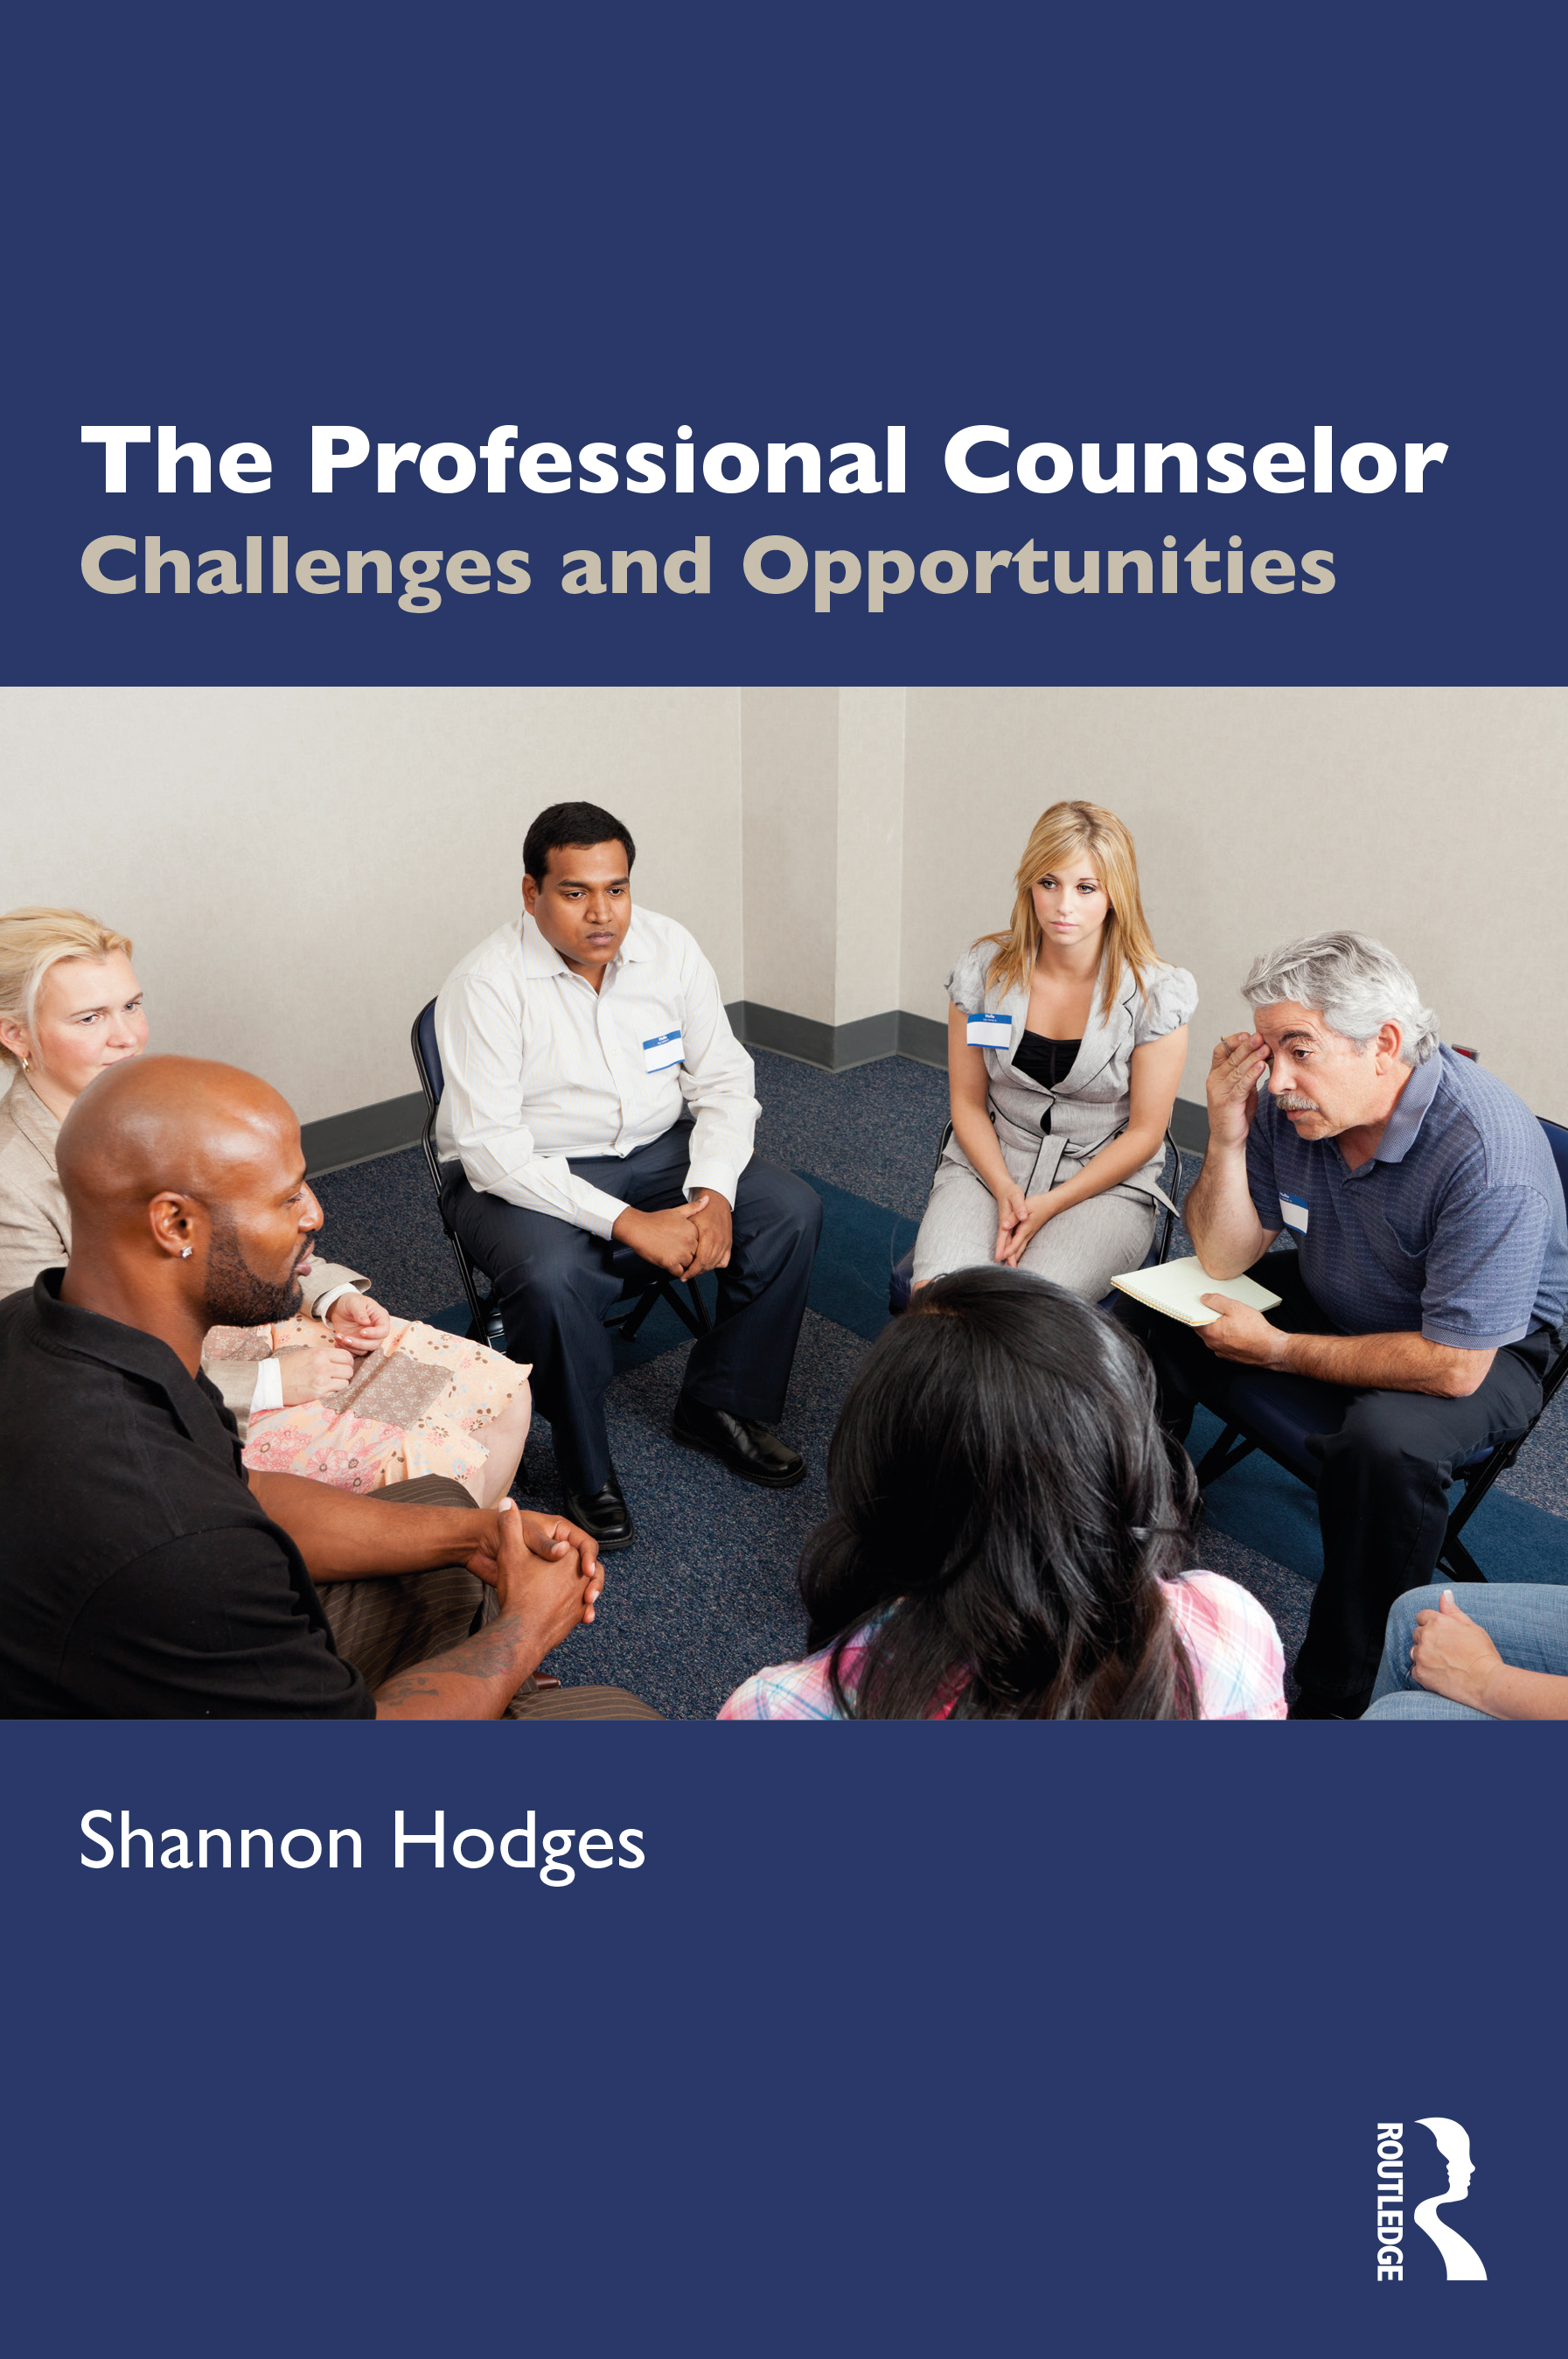 The Professional Counselor: Challenges and Opportunities book cover